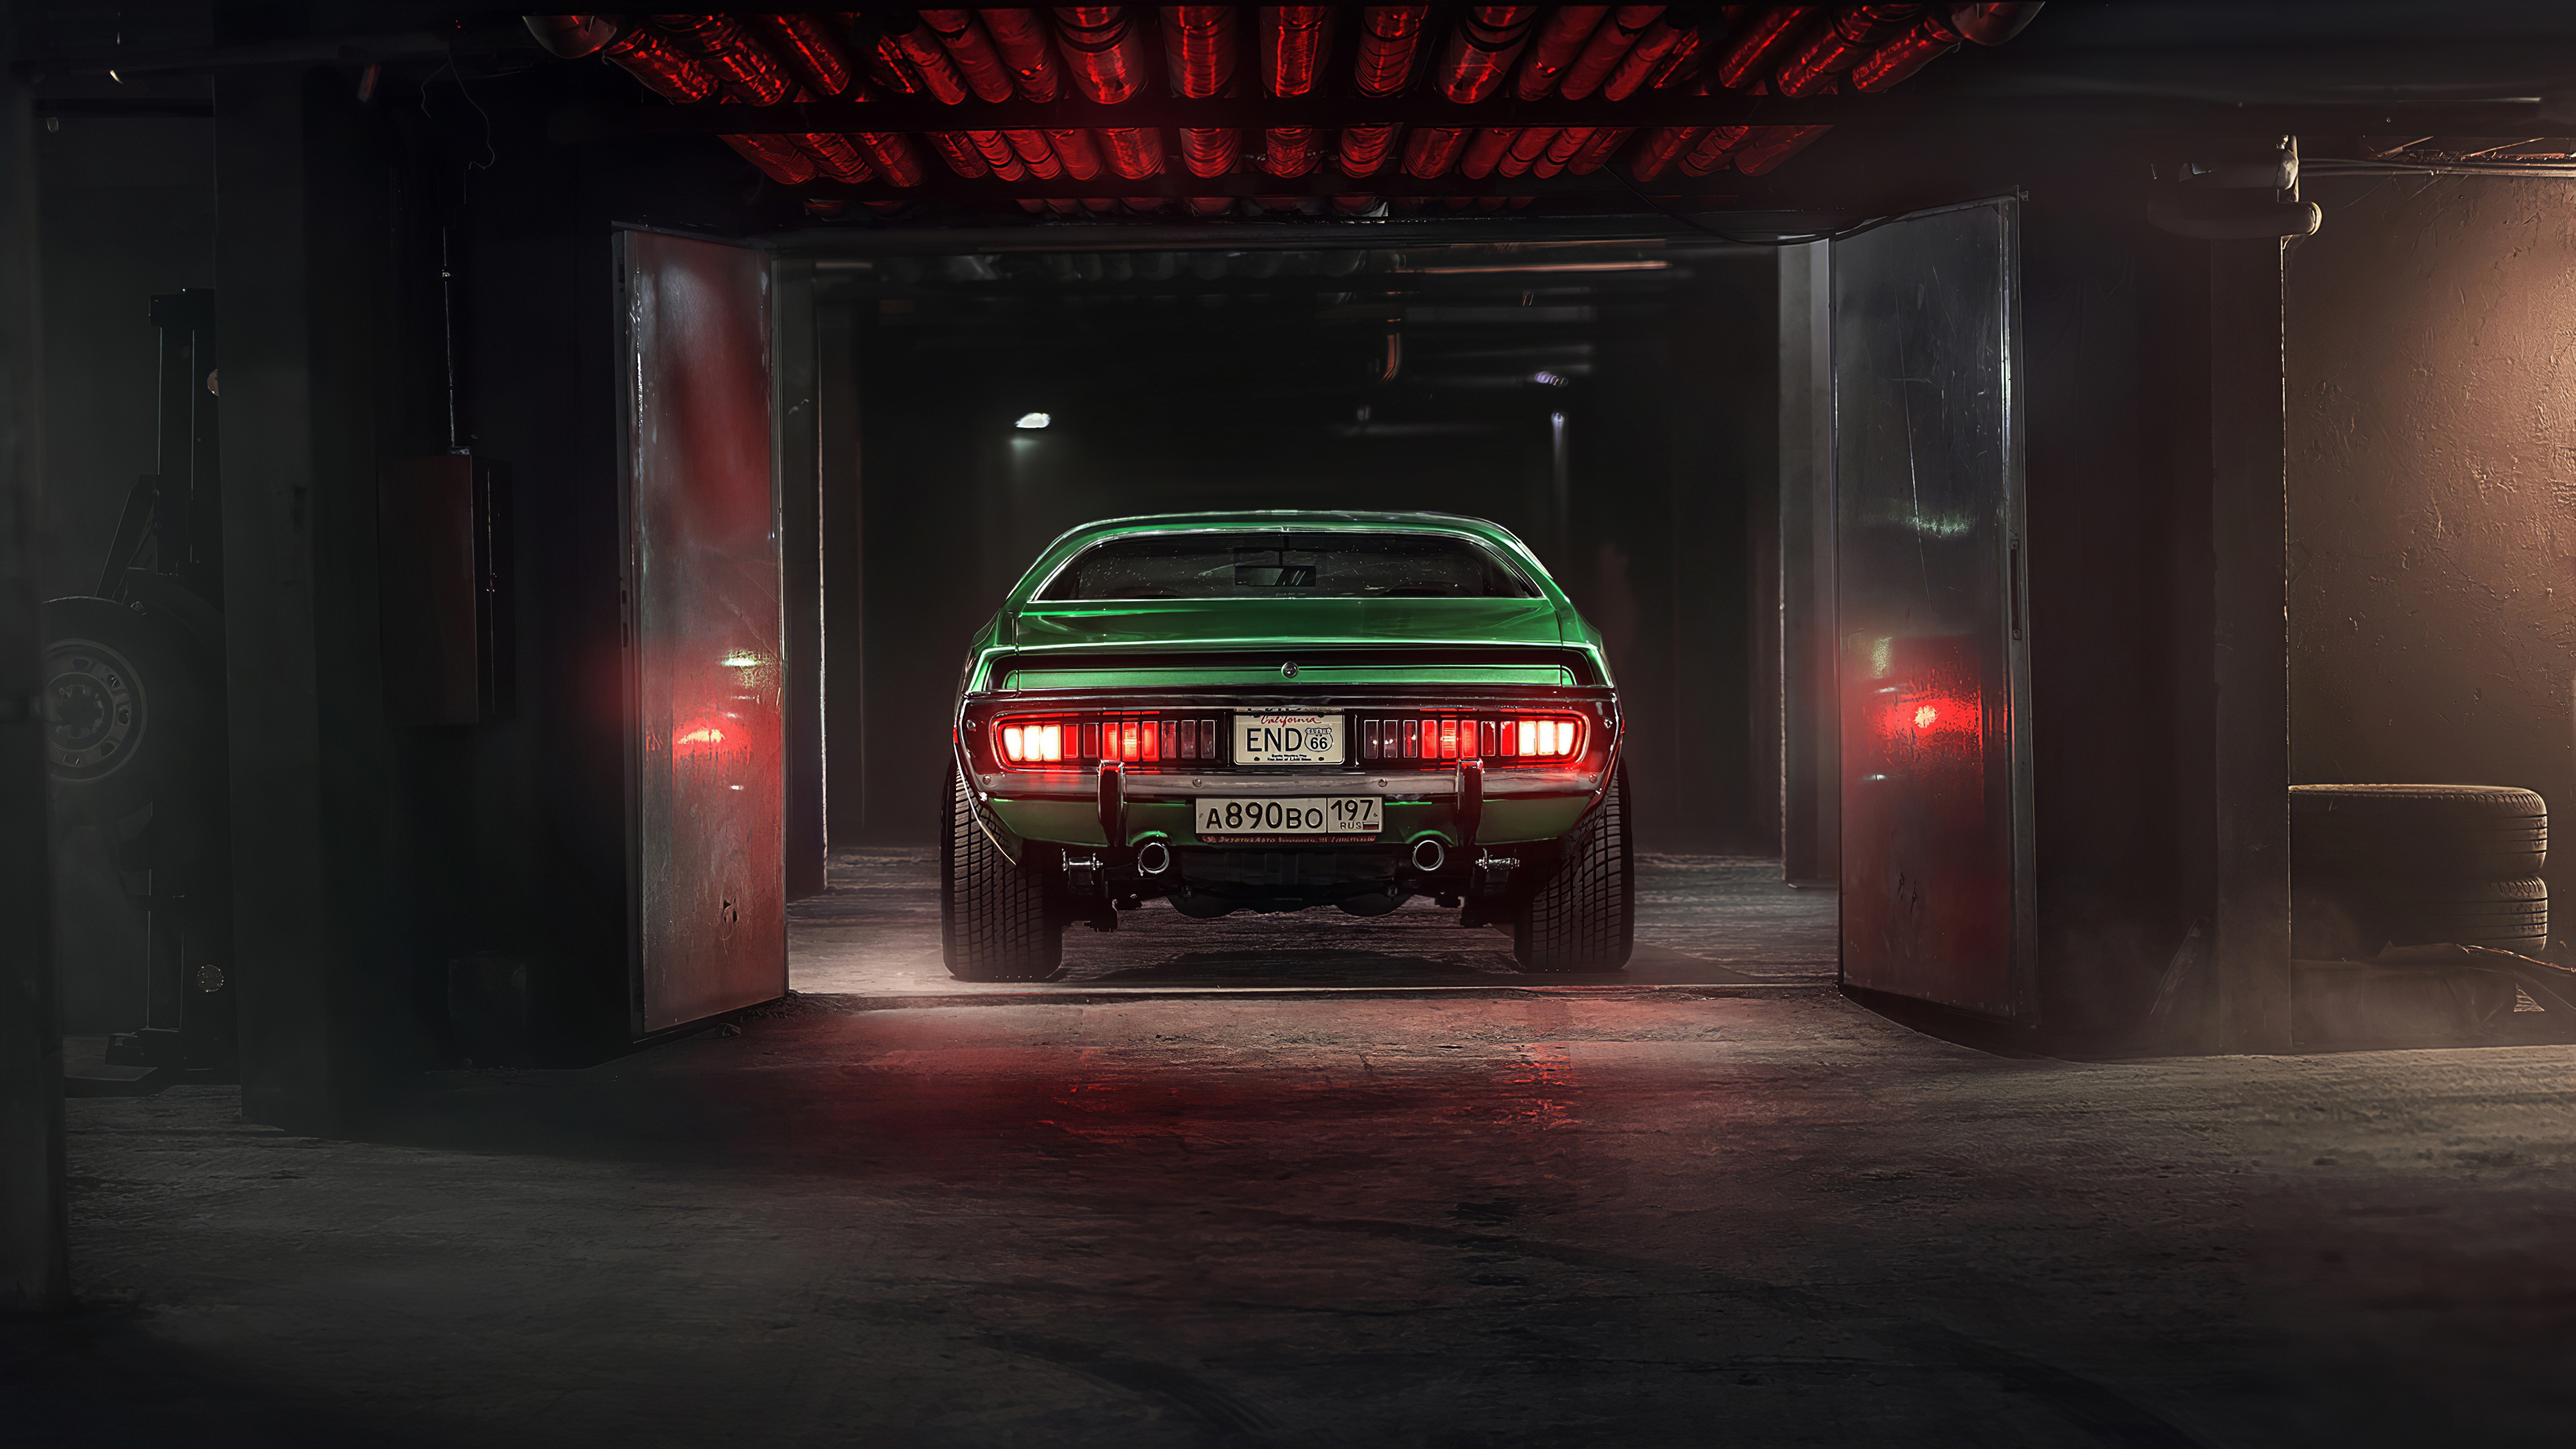 dodge charger muscle car rear 1577653842 - Dodge Charger Muscle Car Rear - Dodge Charger Muscle Car Rear 4k wallpaper